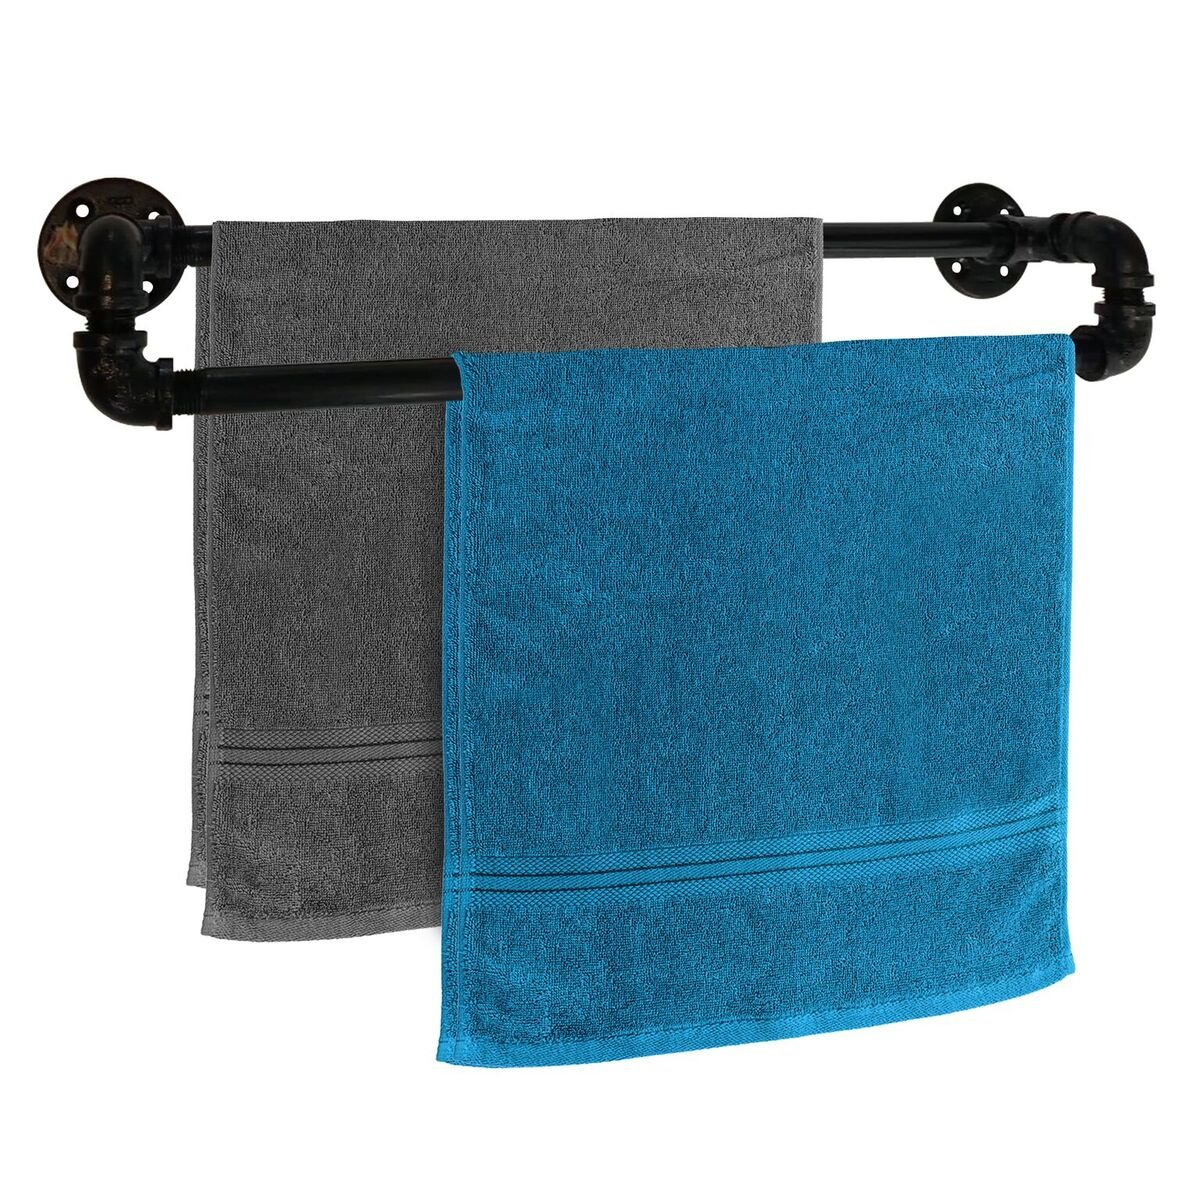 Double Bar Towel Rack - 20'' Heavy Duty Towel Bars - Perfect for Bath, Hand and Beach Towels - Indoor Outdoor Use